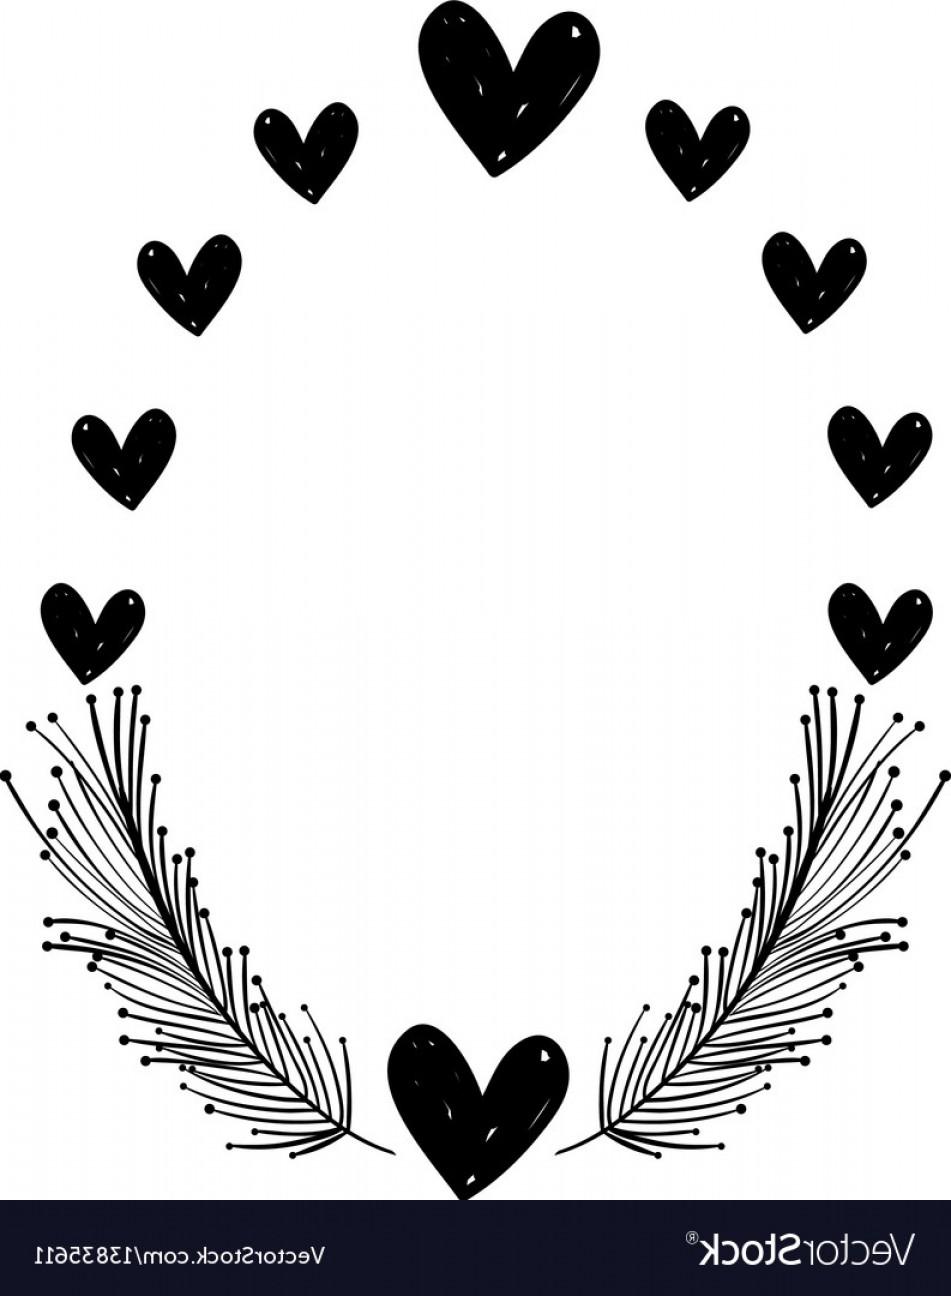 Rustic Heart Vectors: Rustic Feathers With Hearts Decoration Design Vector